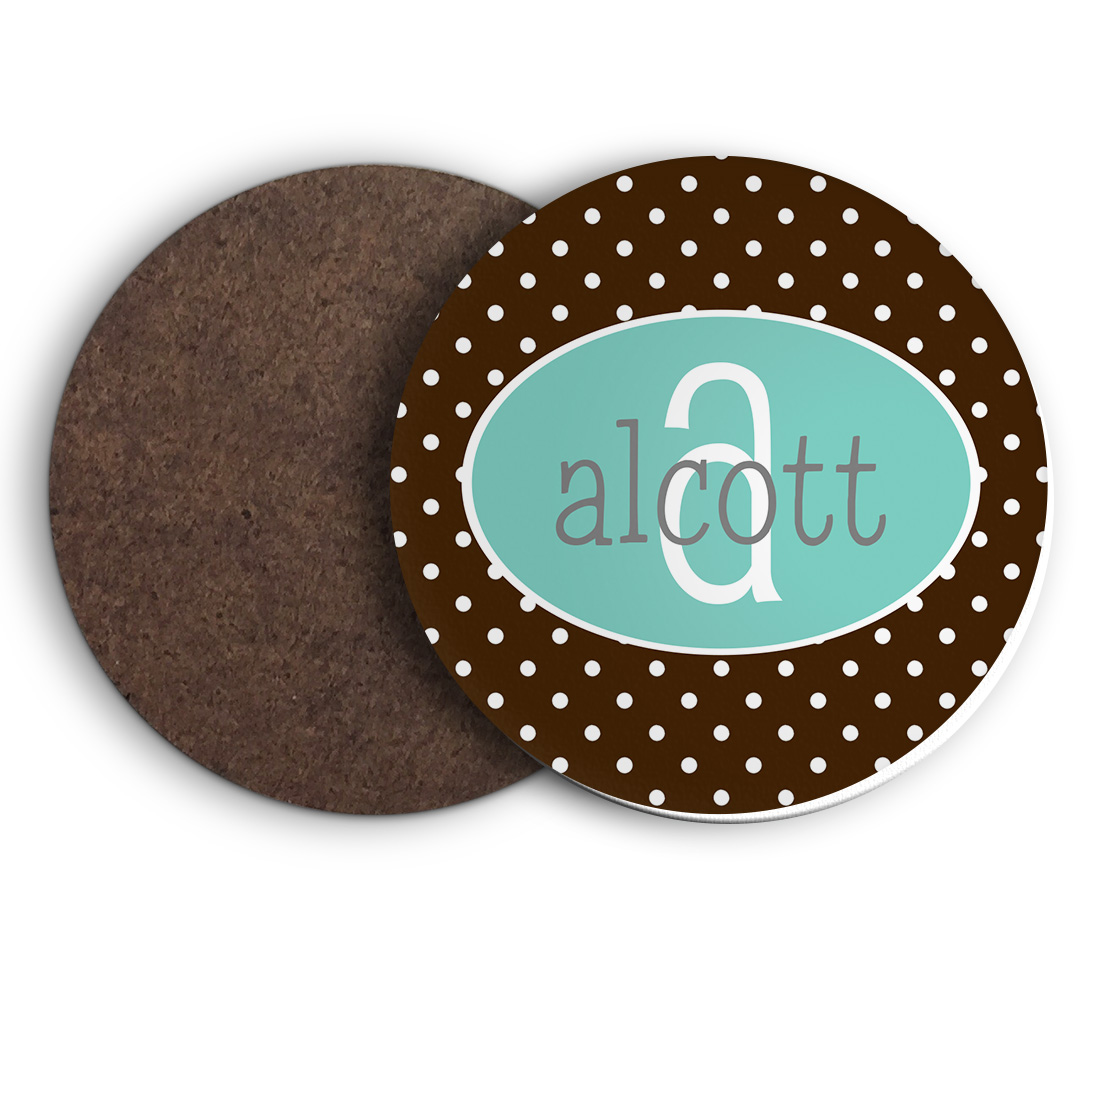 Personalized Coasters Monogrammed Coasters Custom